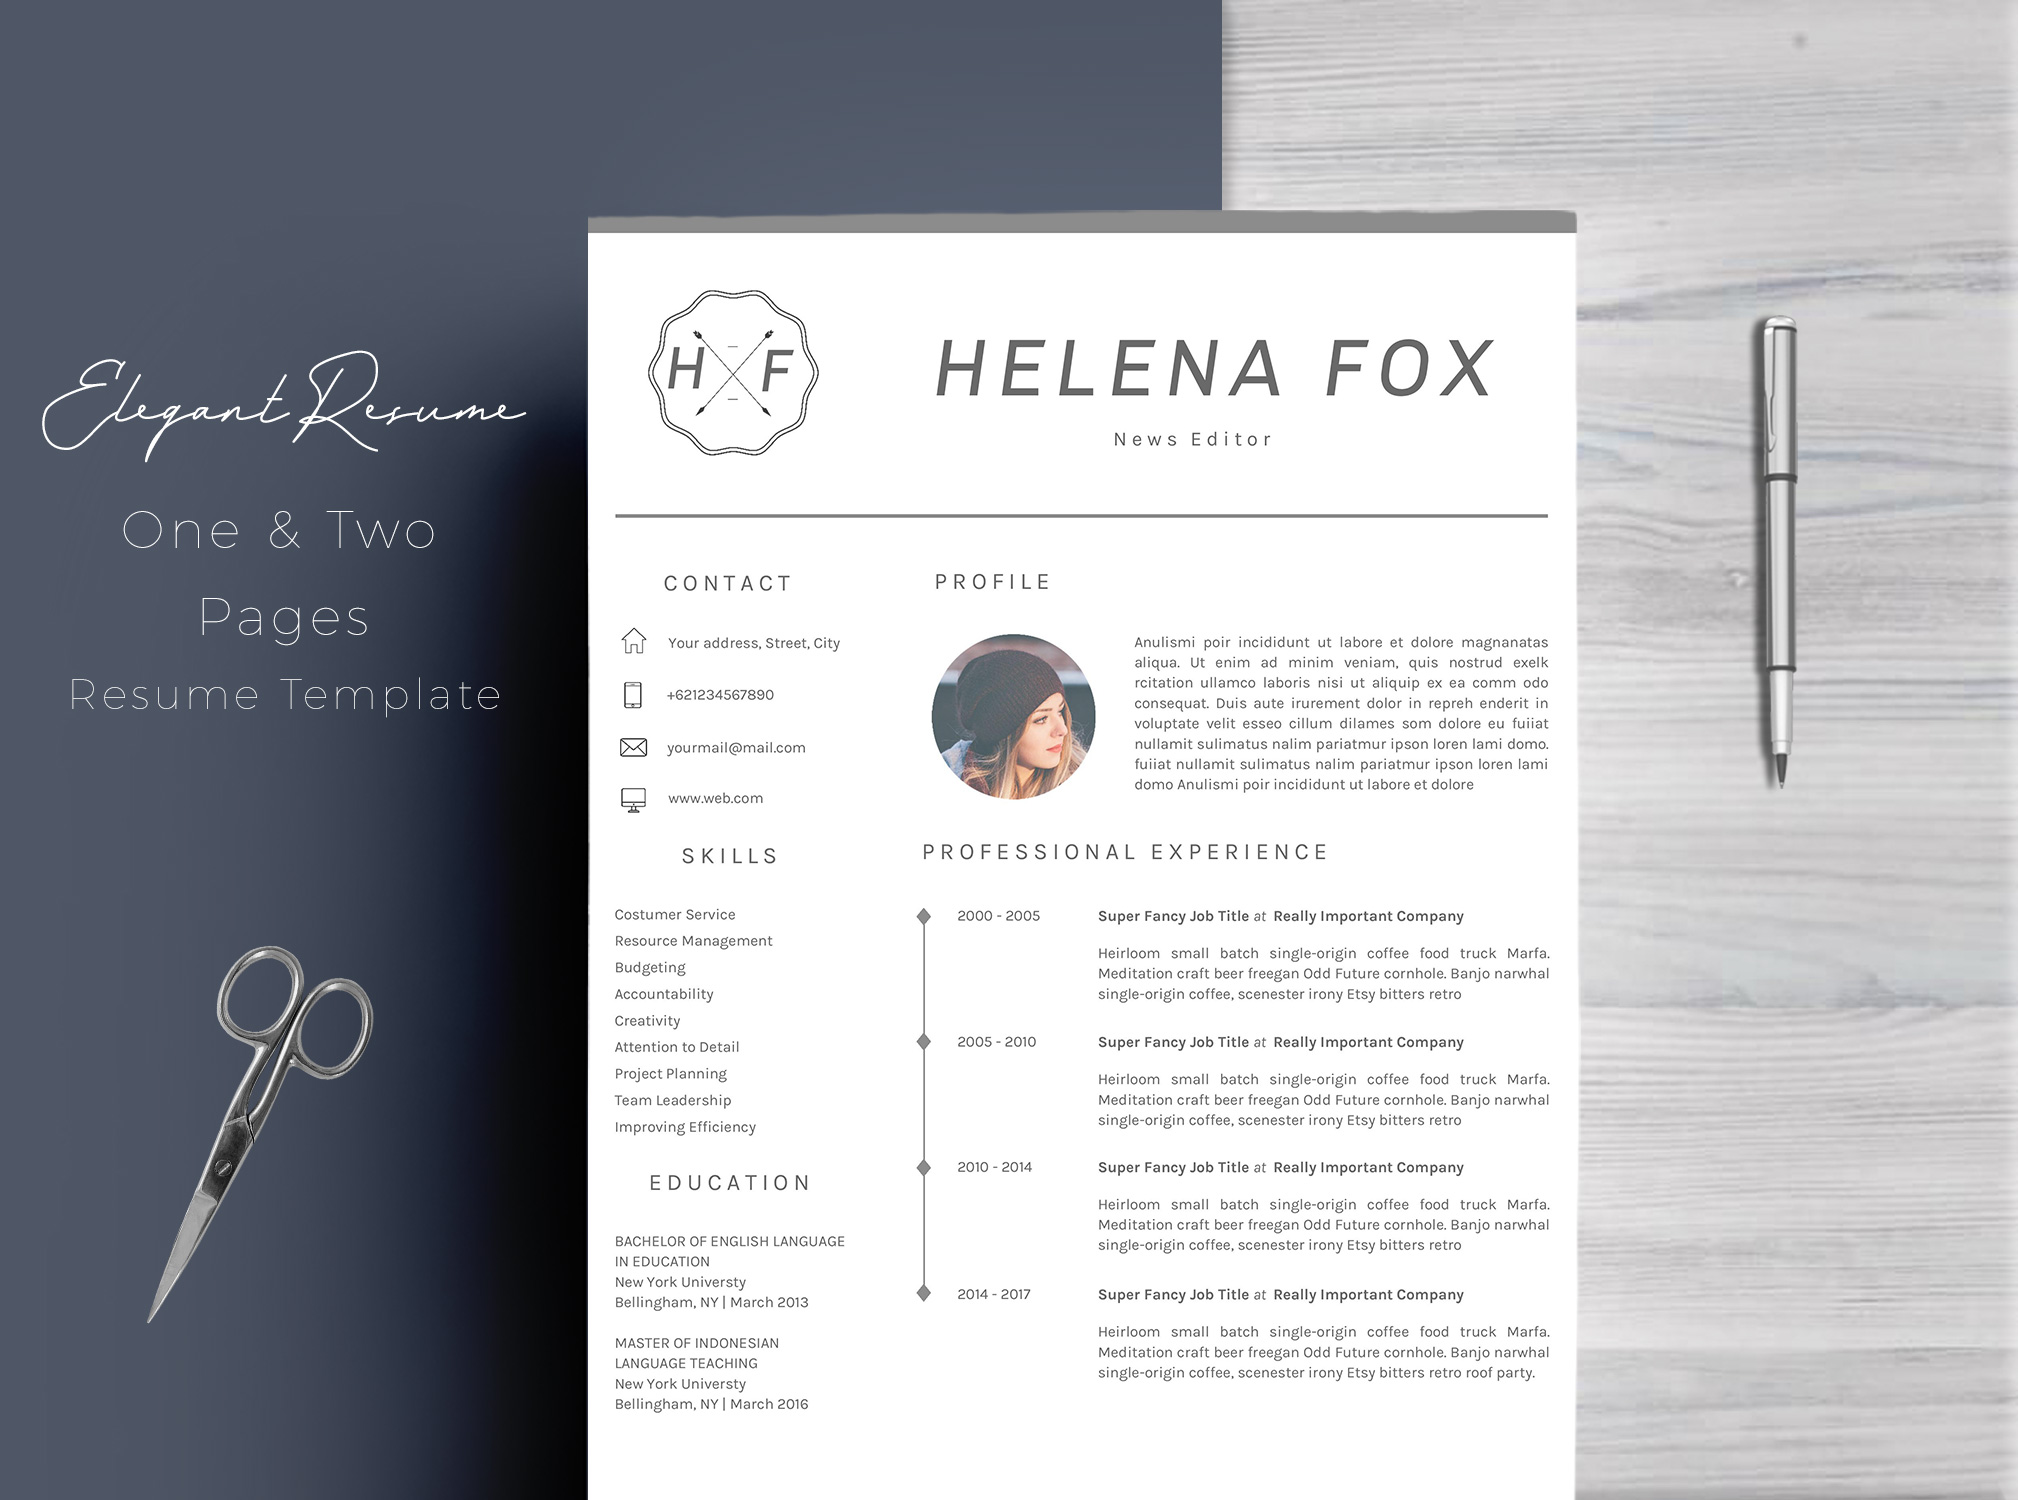 Creative Chic Resume Template 4 Pages example image 1